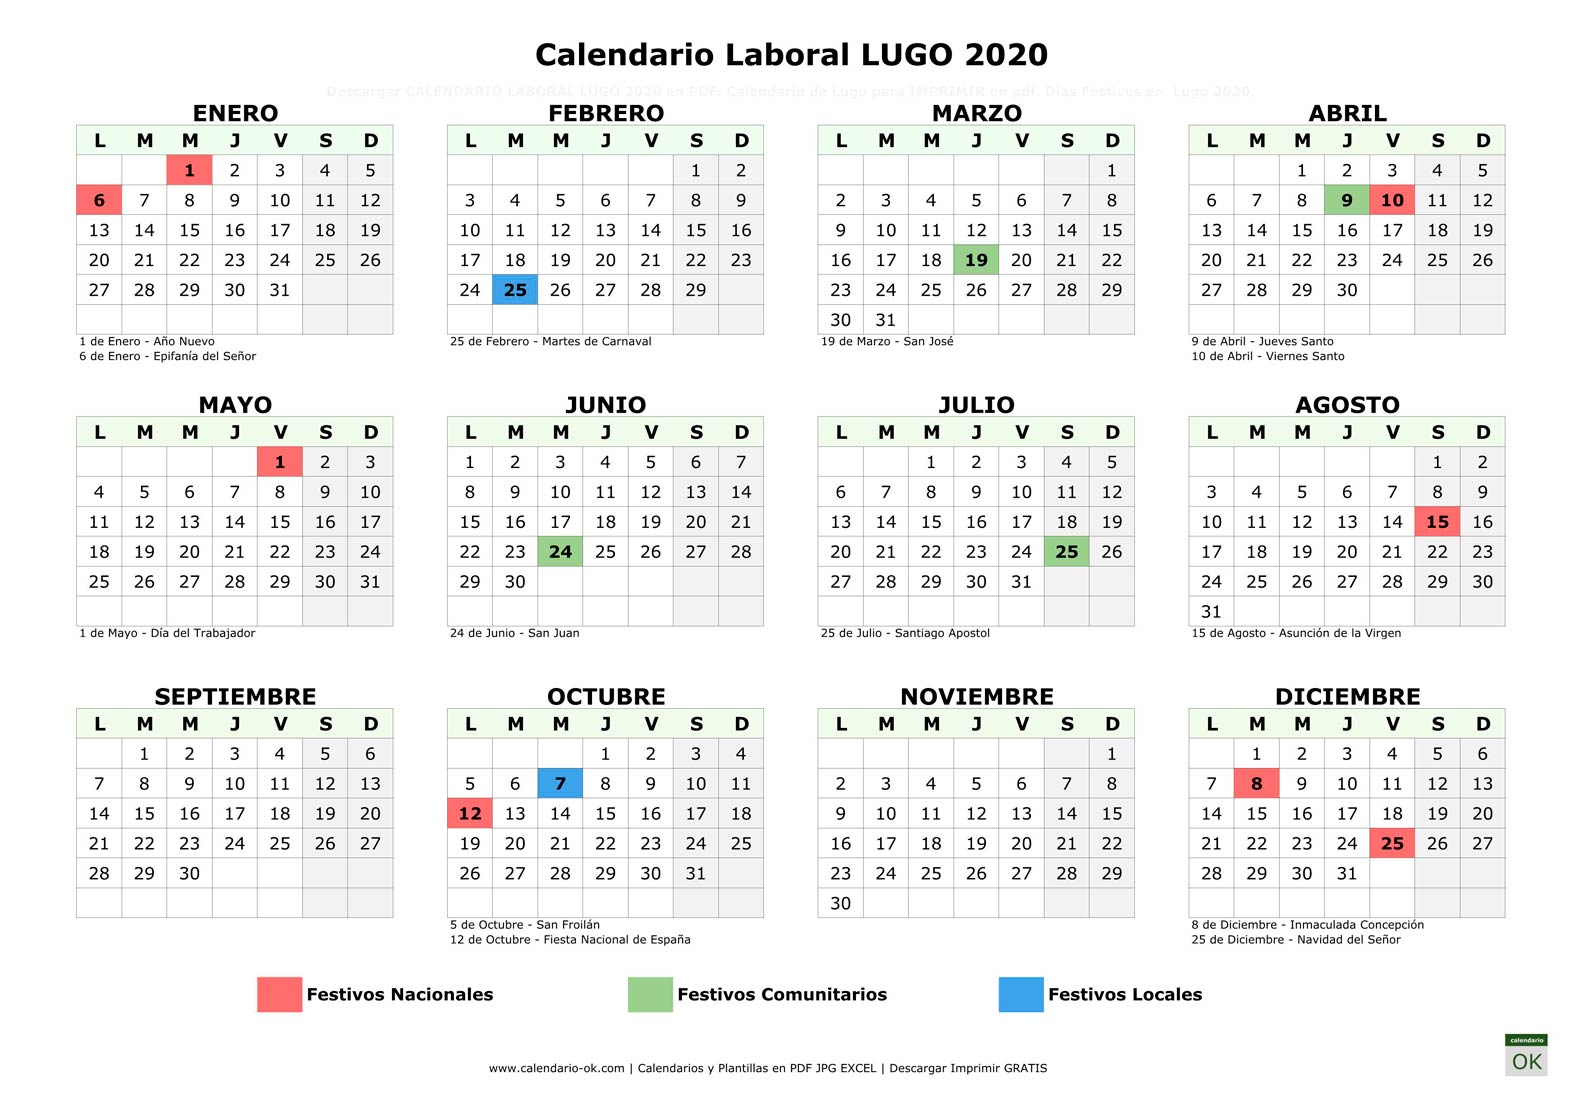 Calendario Laboral LUGO 2020 horizontal